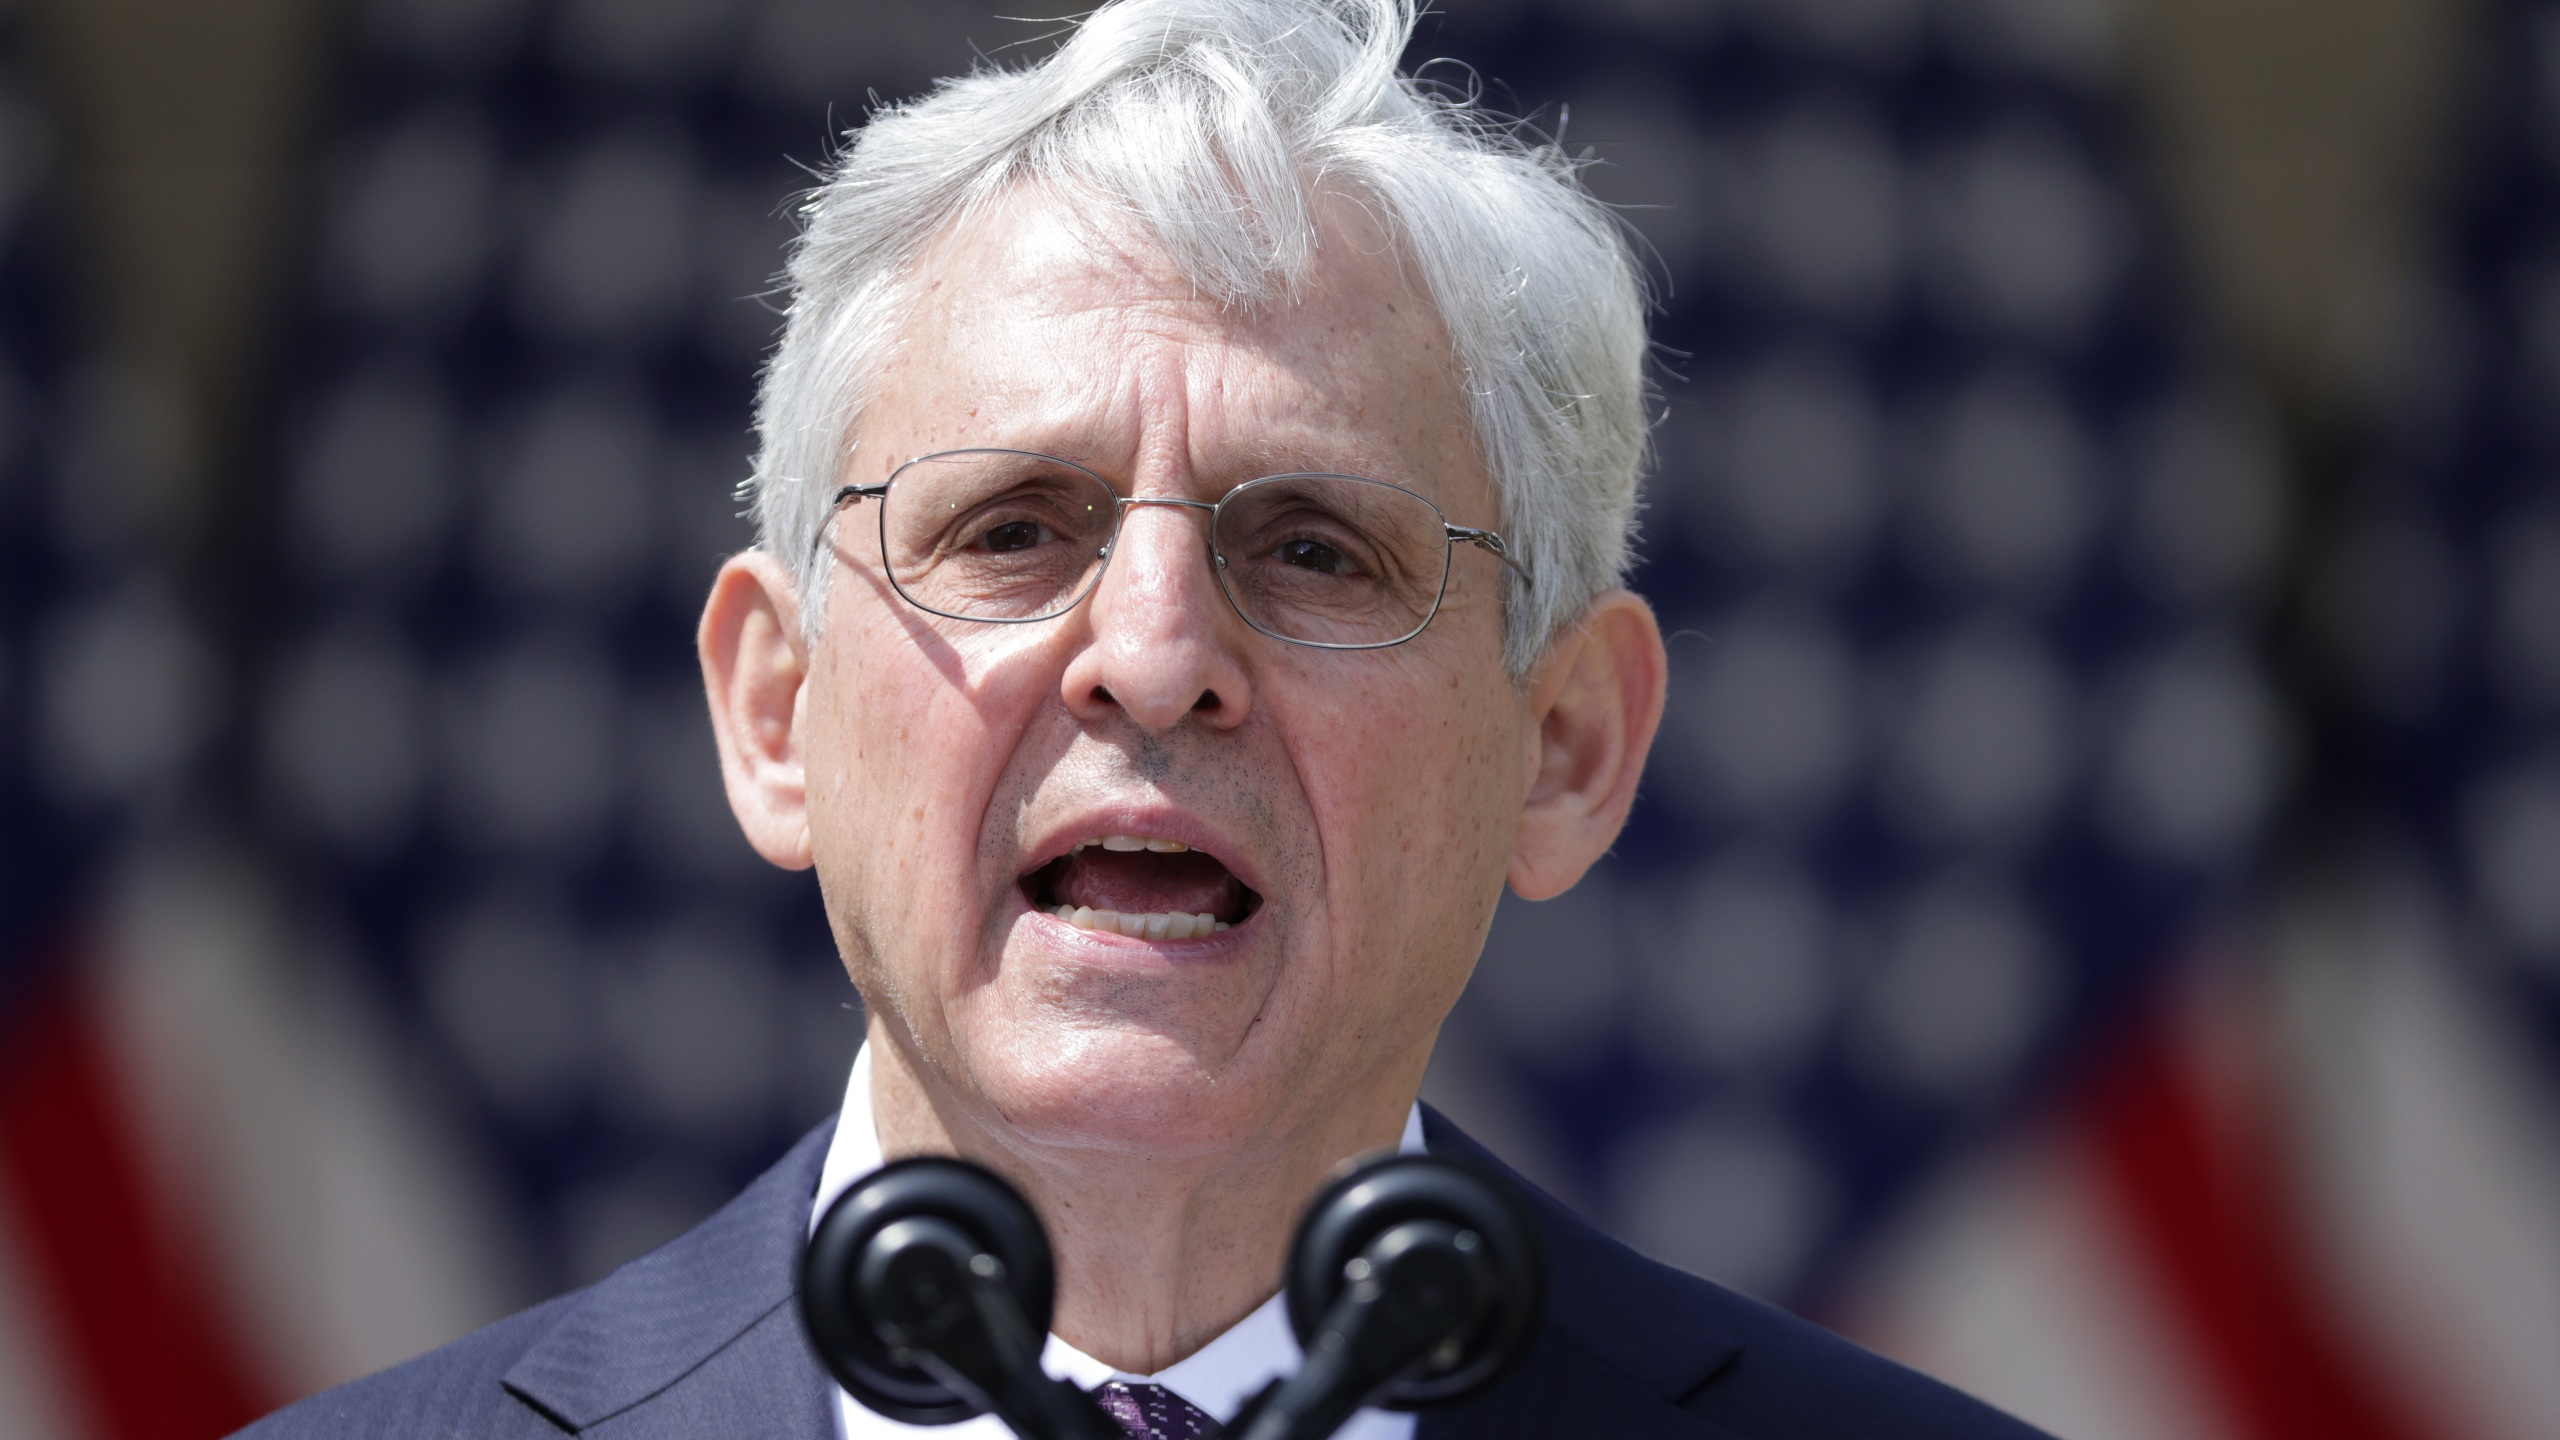 U.S. Attorney General Merrick Garland speaks during an event on gun control in the Rose Garden at the White House on April 8, 2021.A(lex Wong/Getty Images)